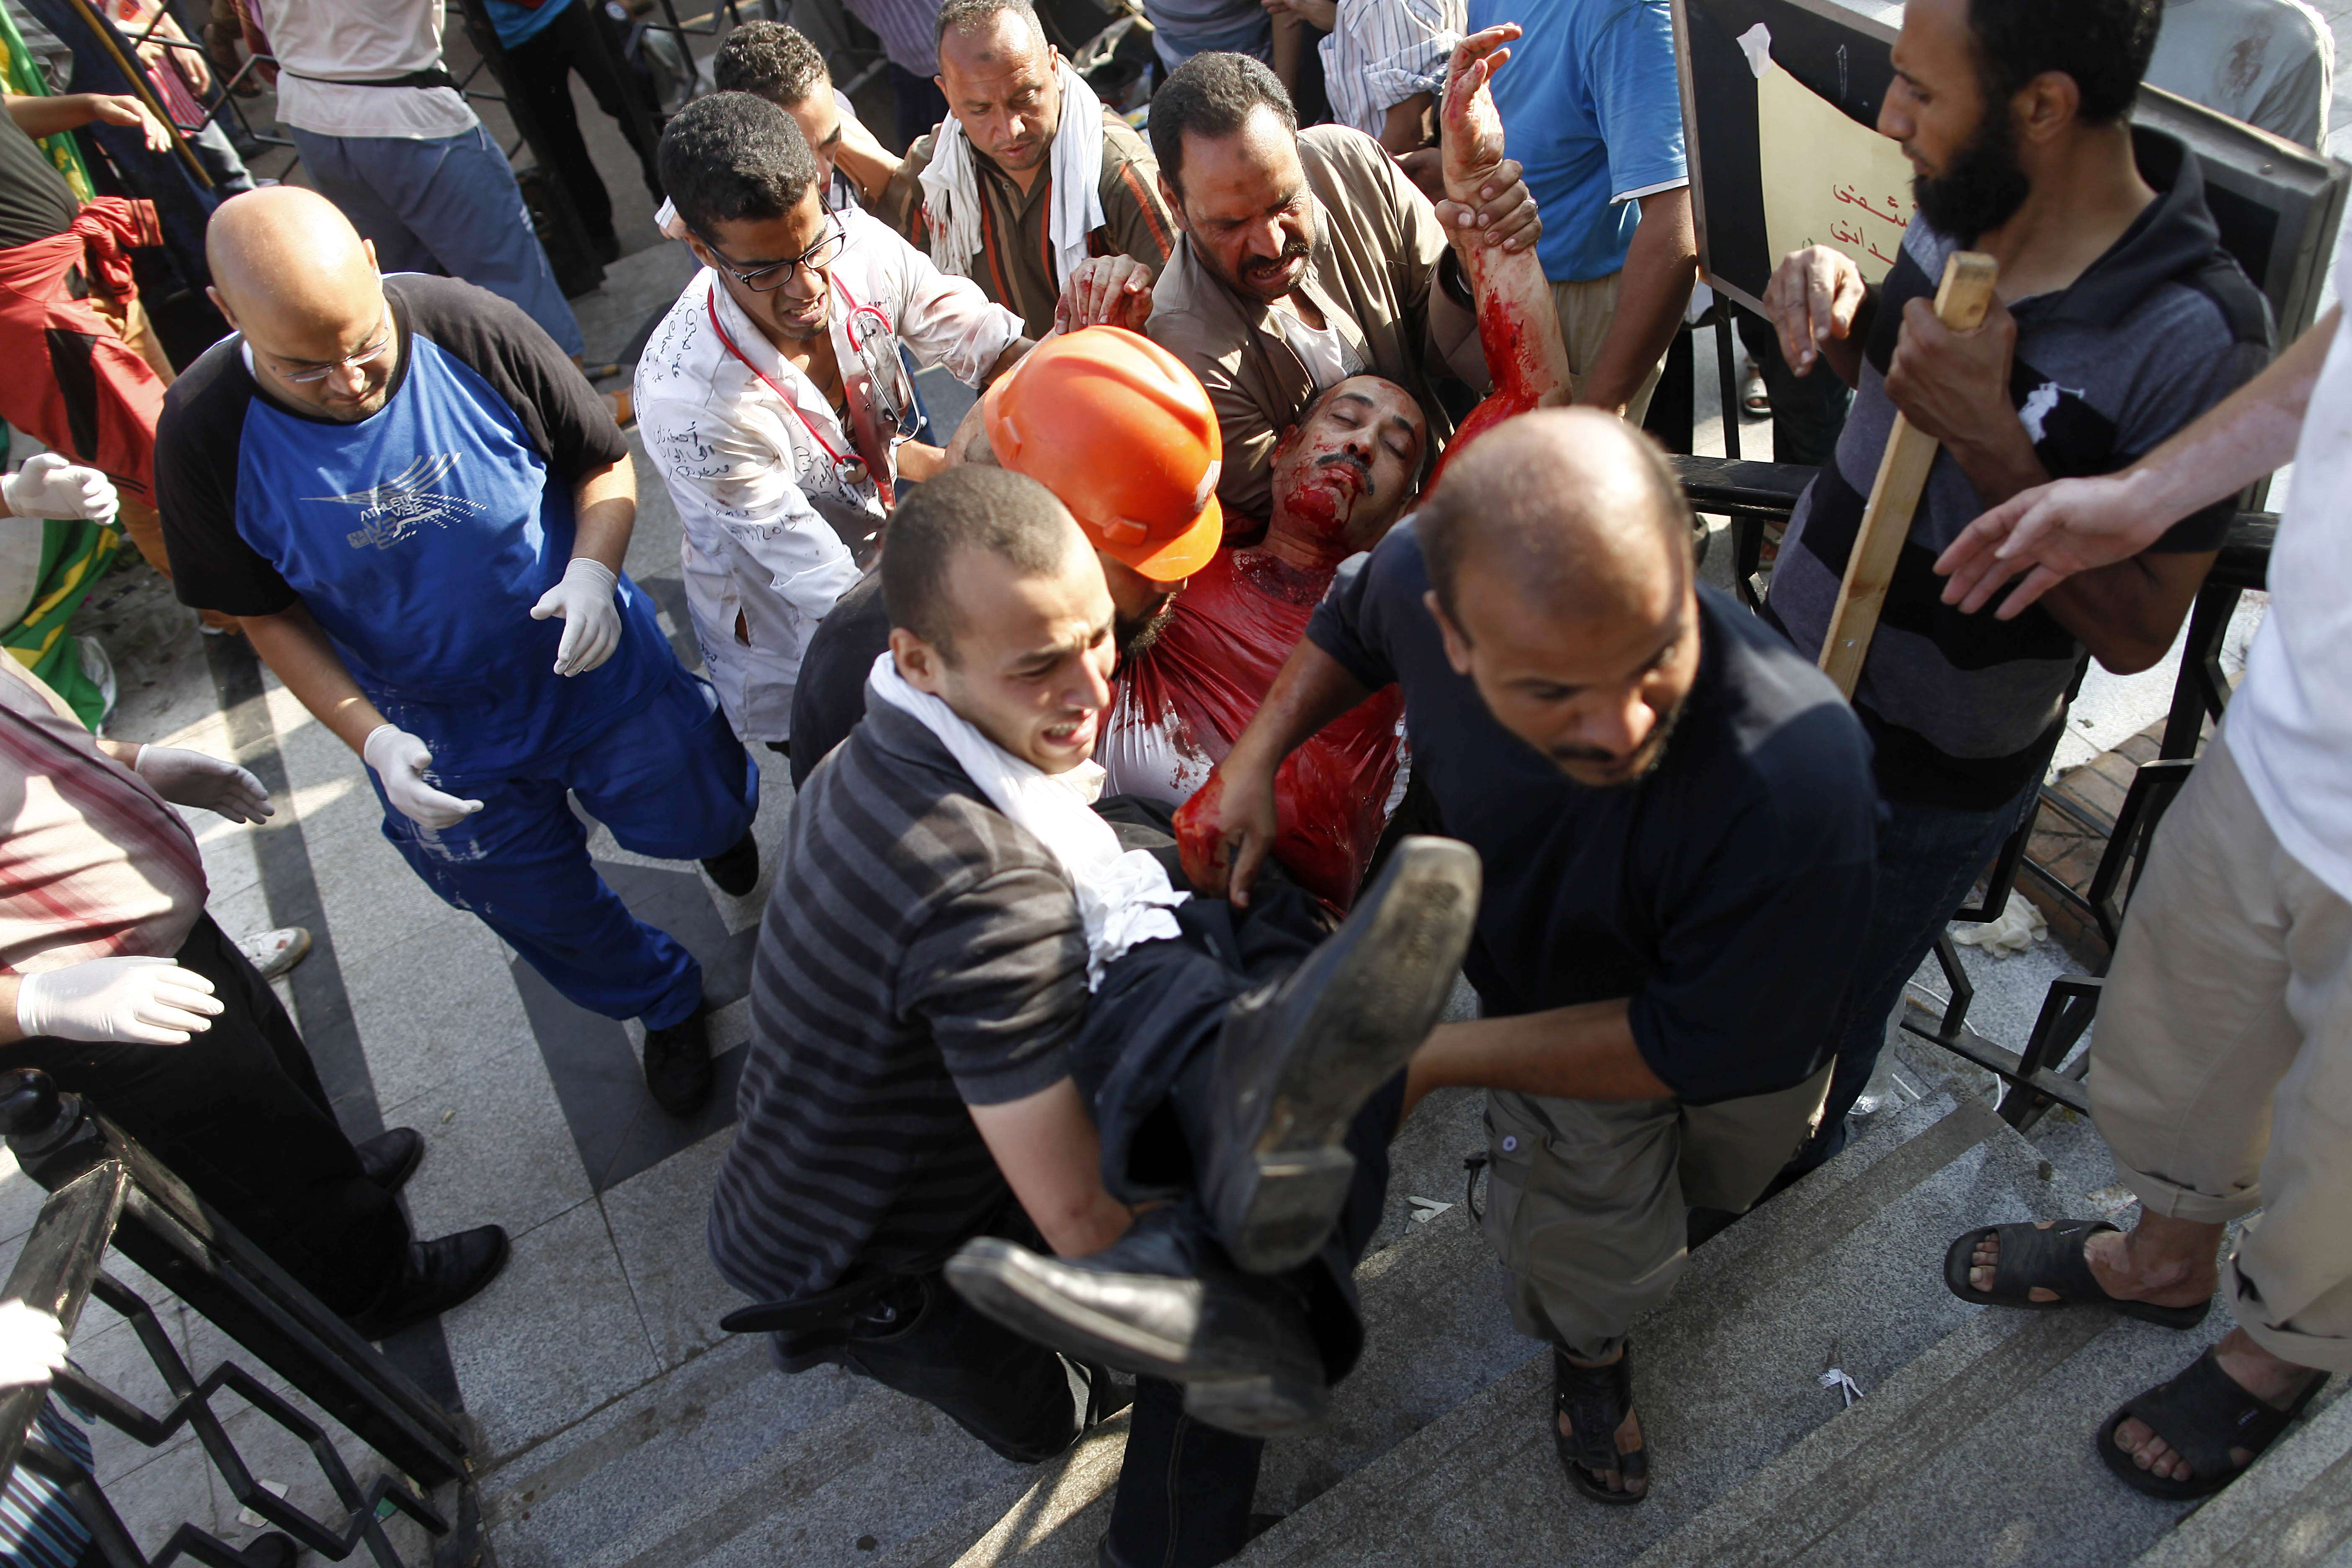 A supporter of the Muslim Brotherhood who was injured during a rally in support of deposed president Mohamed Morsi is carried to safety following clashes with police outside the elite Republican Guards base in Cairo early on July 8, 2013.  (AFP Photo)